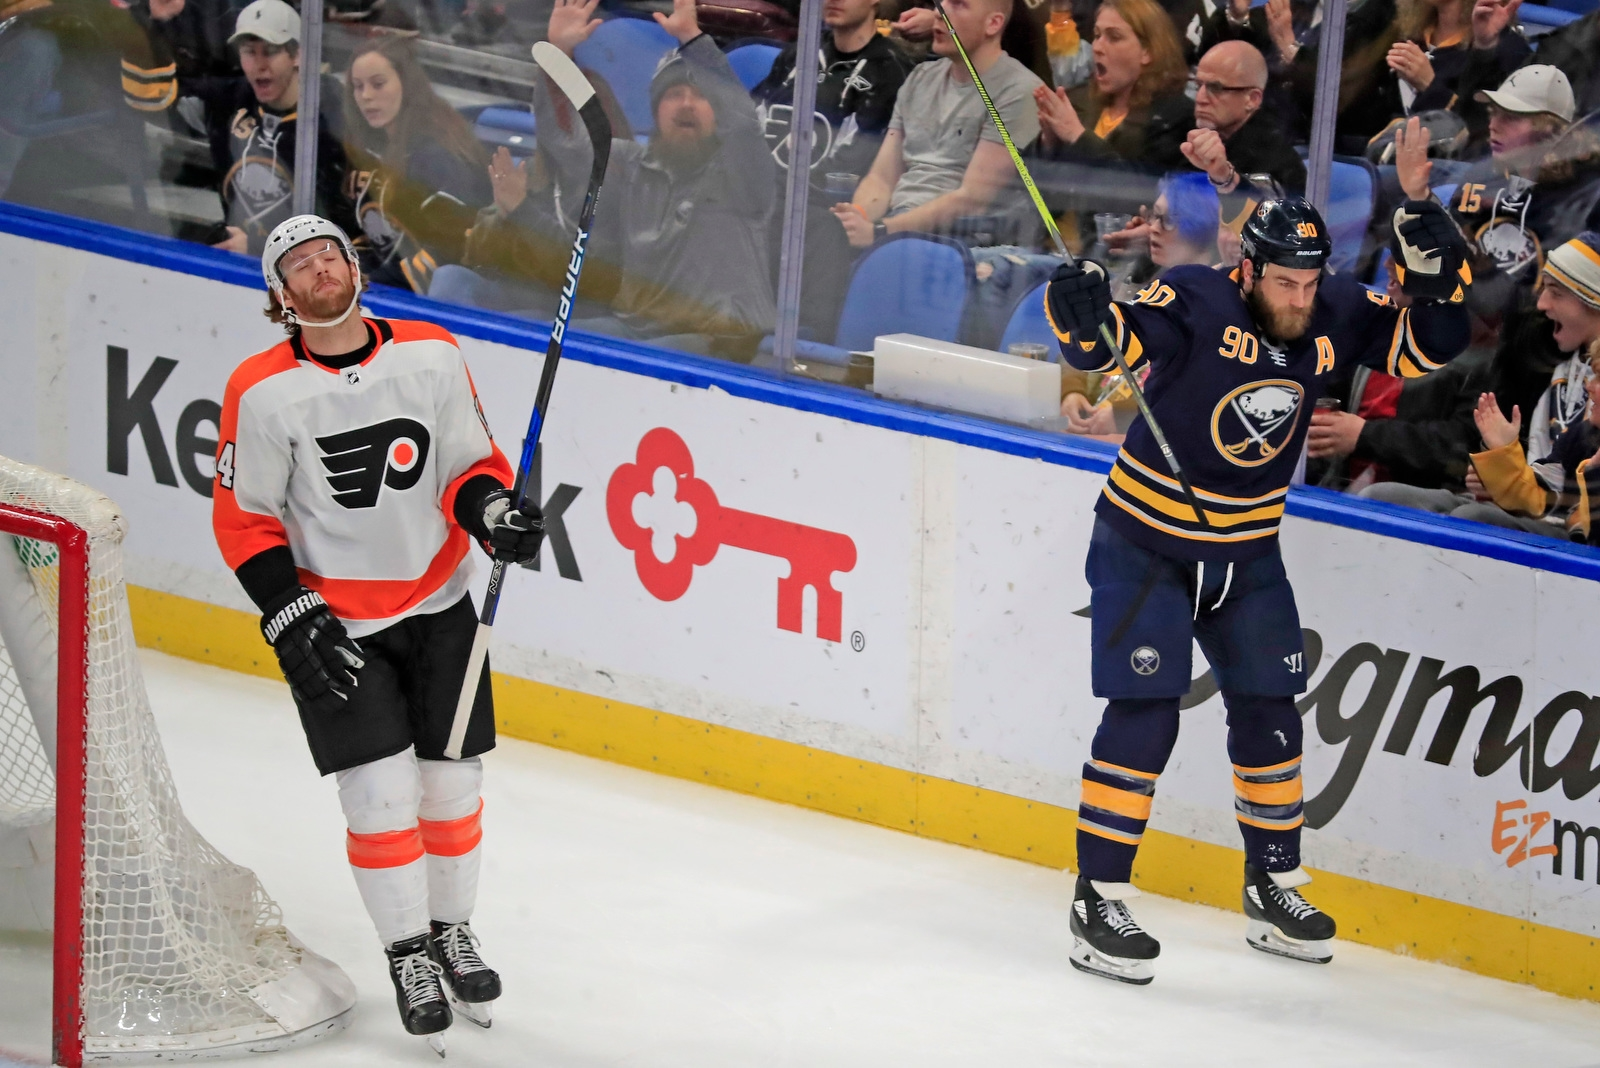 Buffalo Sabres' Ryan Ou2019Reilly celebrates a goal against the Philadelphia Flyers during third period action.